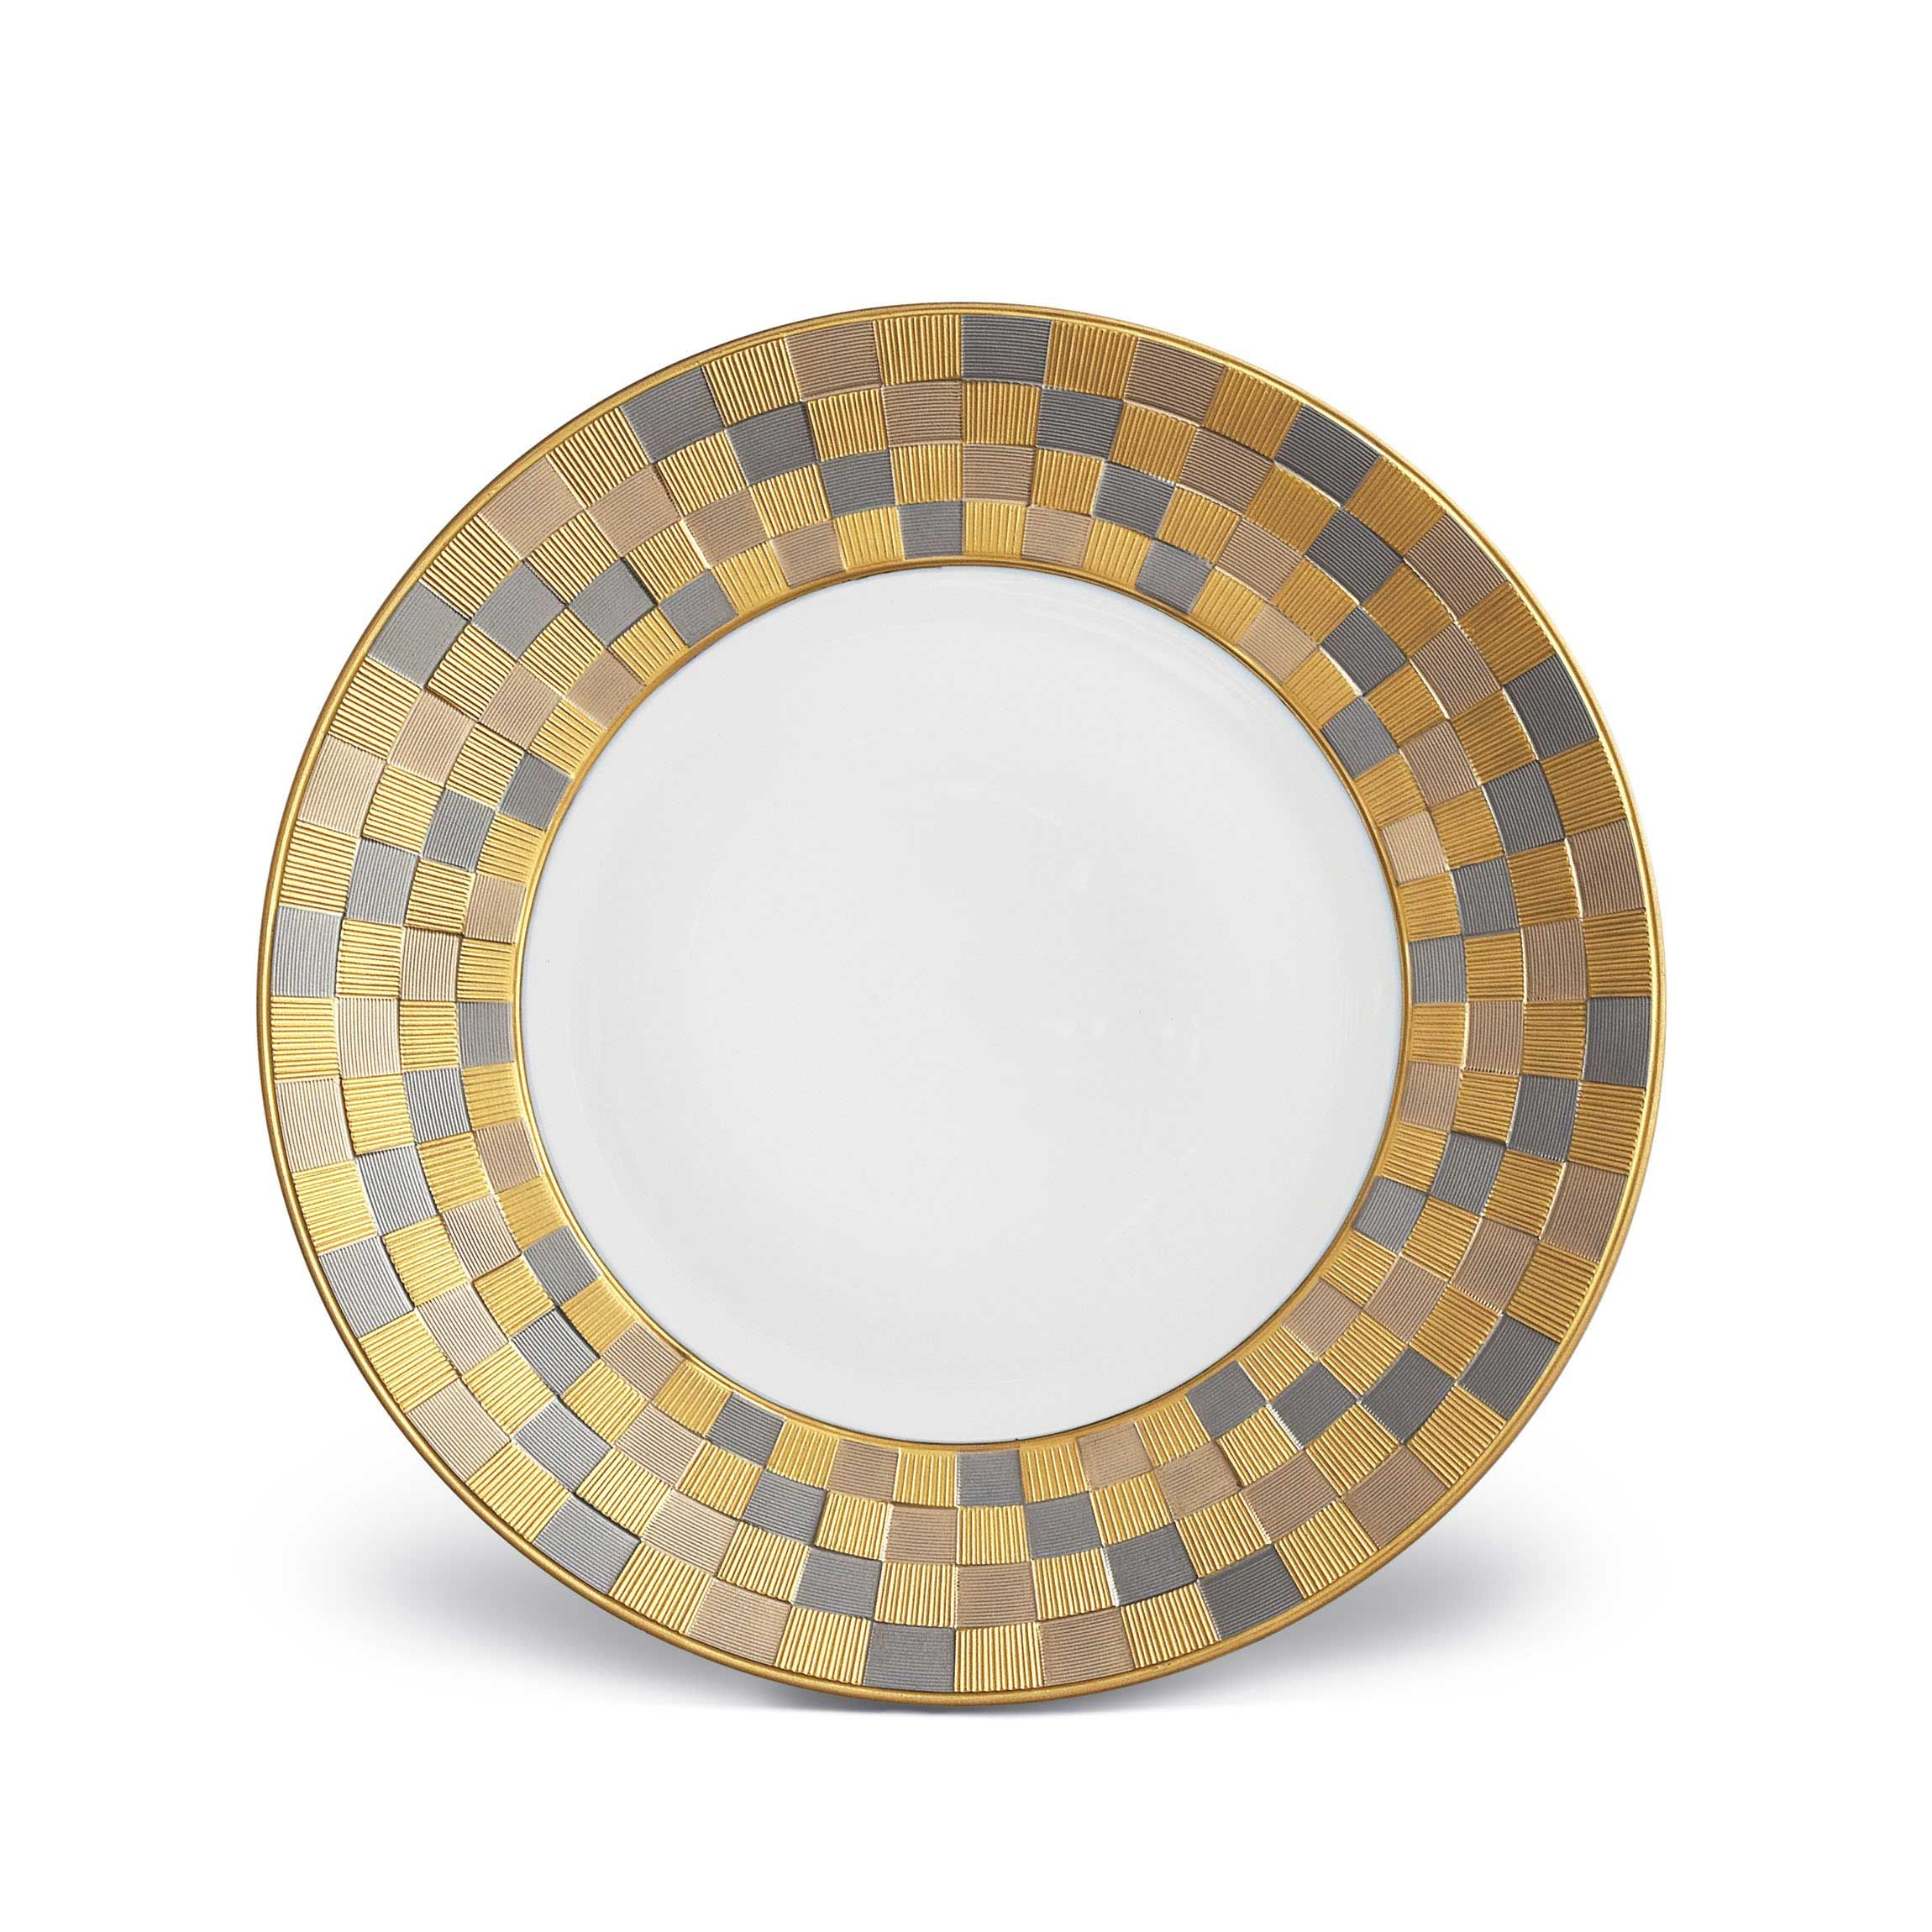 With the rise of the Byzantine empire in the 5th century, the art of mosaic took on brilliant new applications, inspiring artisans ever since. In homage to these marvelous, geometric arrangements, the Byzanteum dinnerware collection reinterprets the ancient craft in an innovative and contemporary fashion, with rich textures brought to life through a variety of meticulously detailed finishes. Available in white, 24K gold, platinum and tri-color.